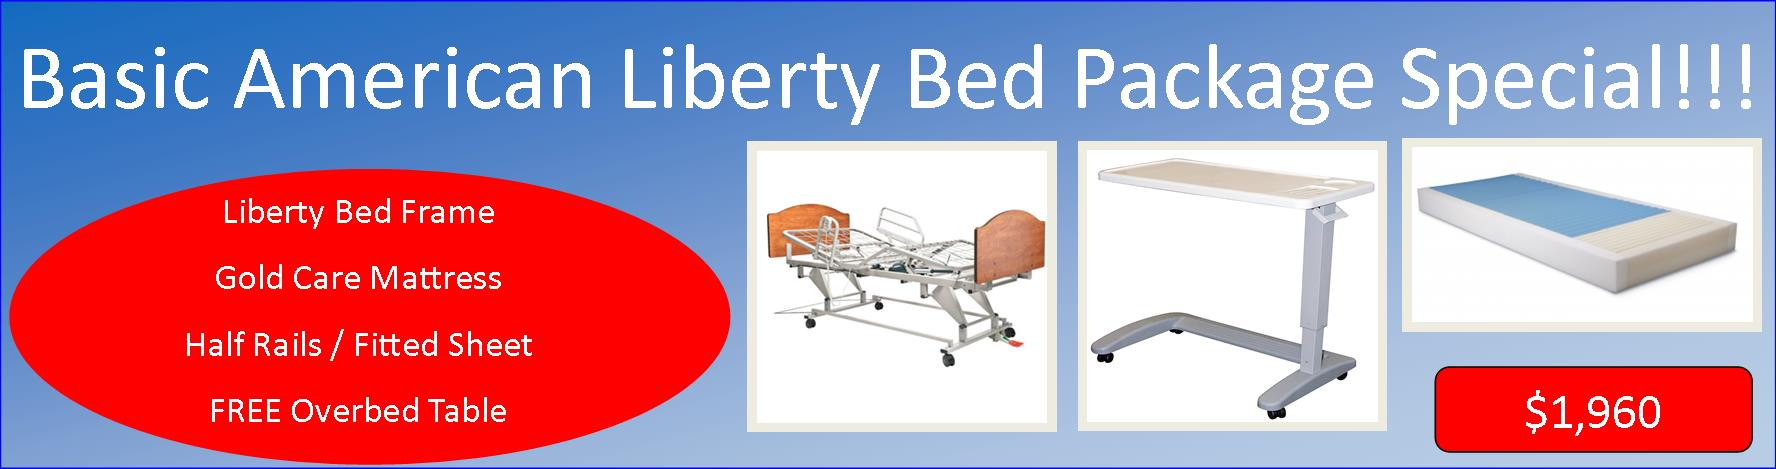 basic amer liberty bed.jpg